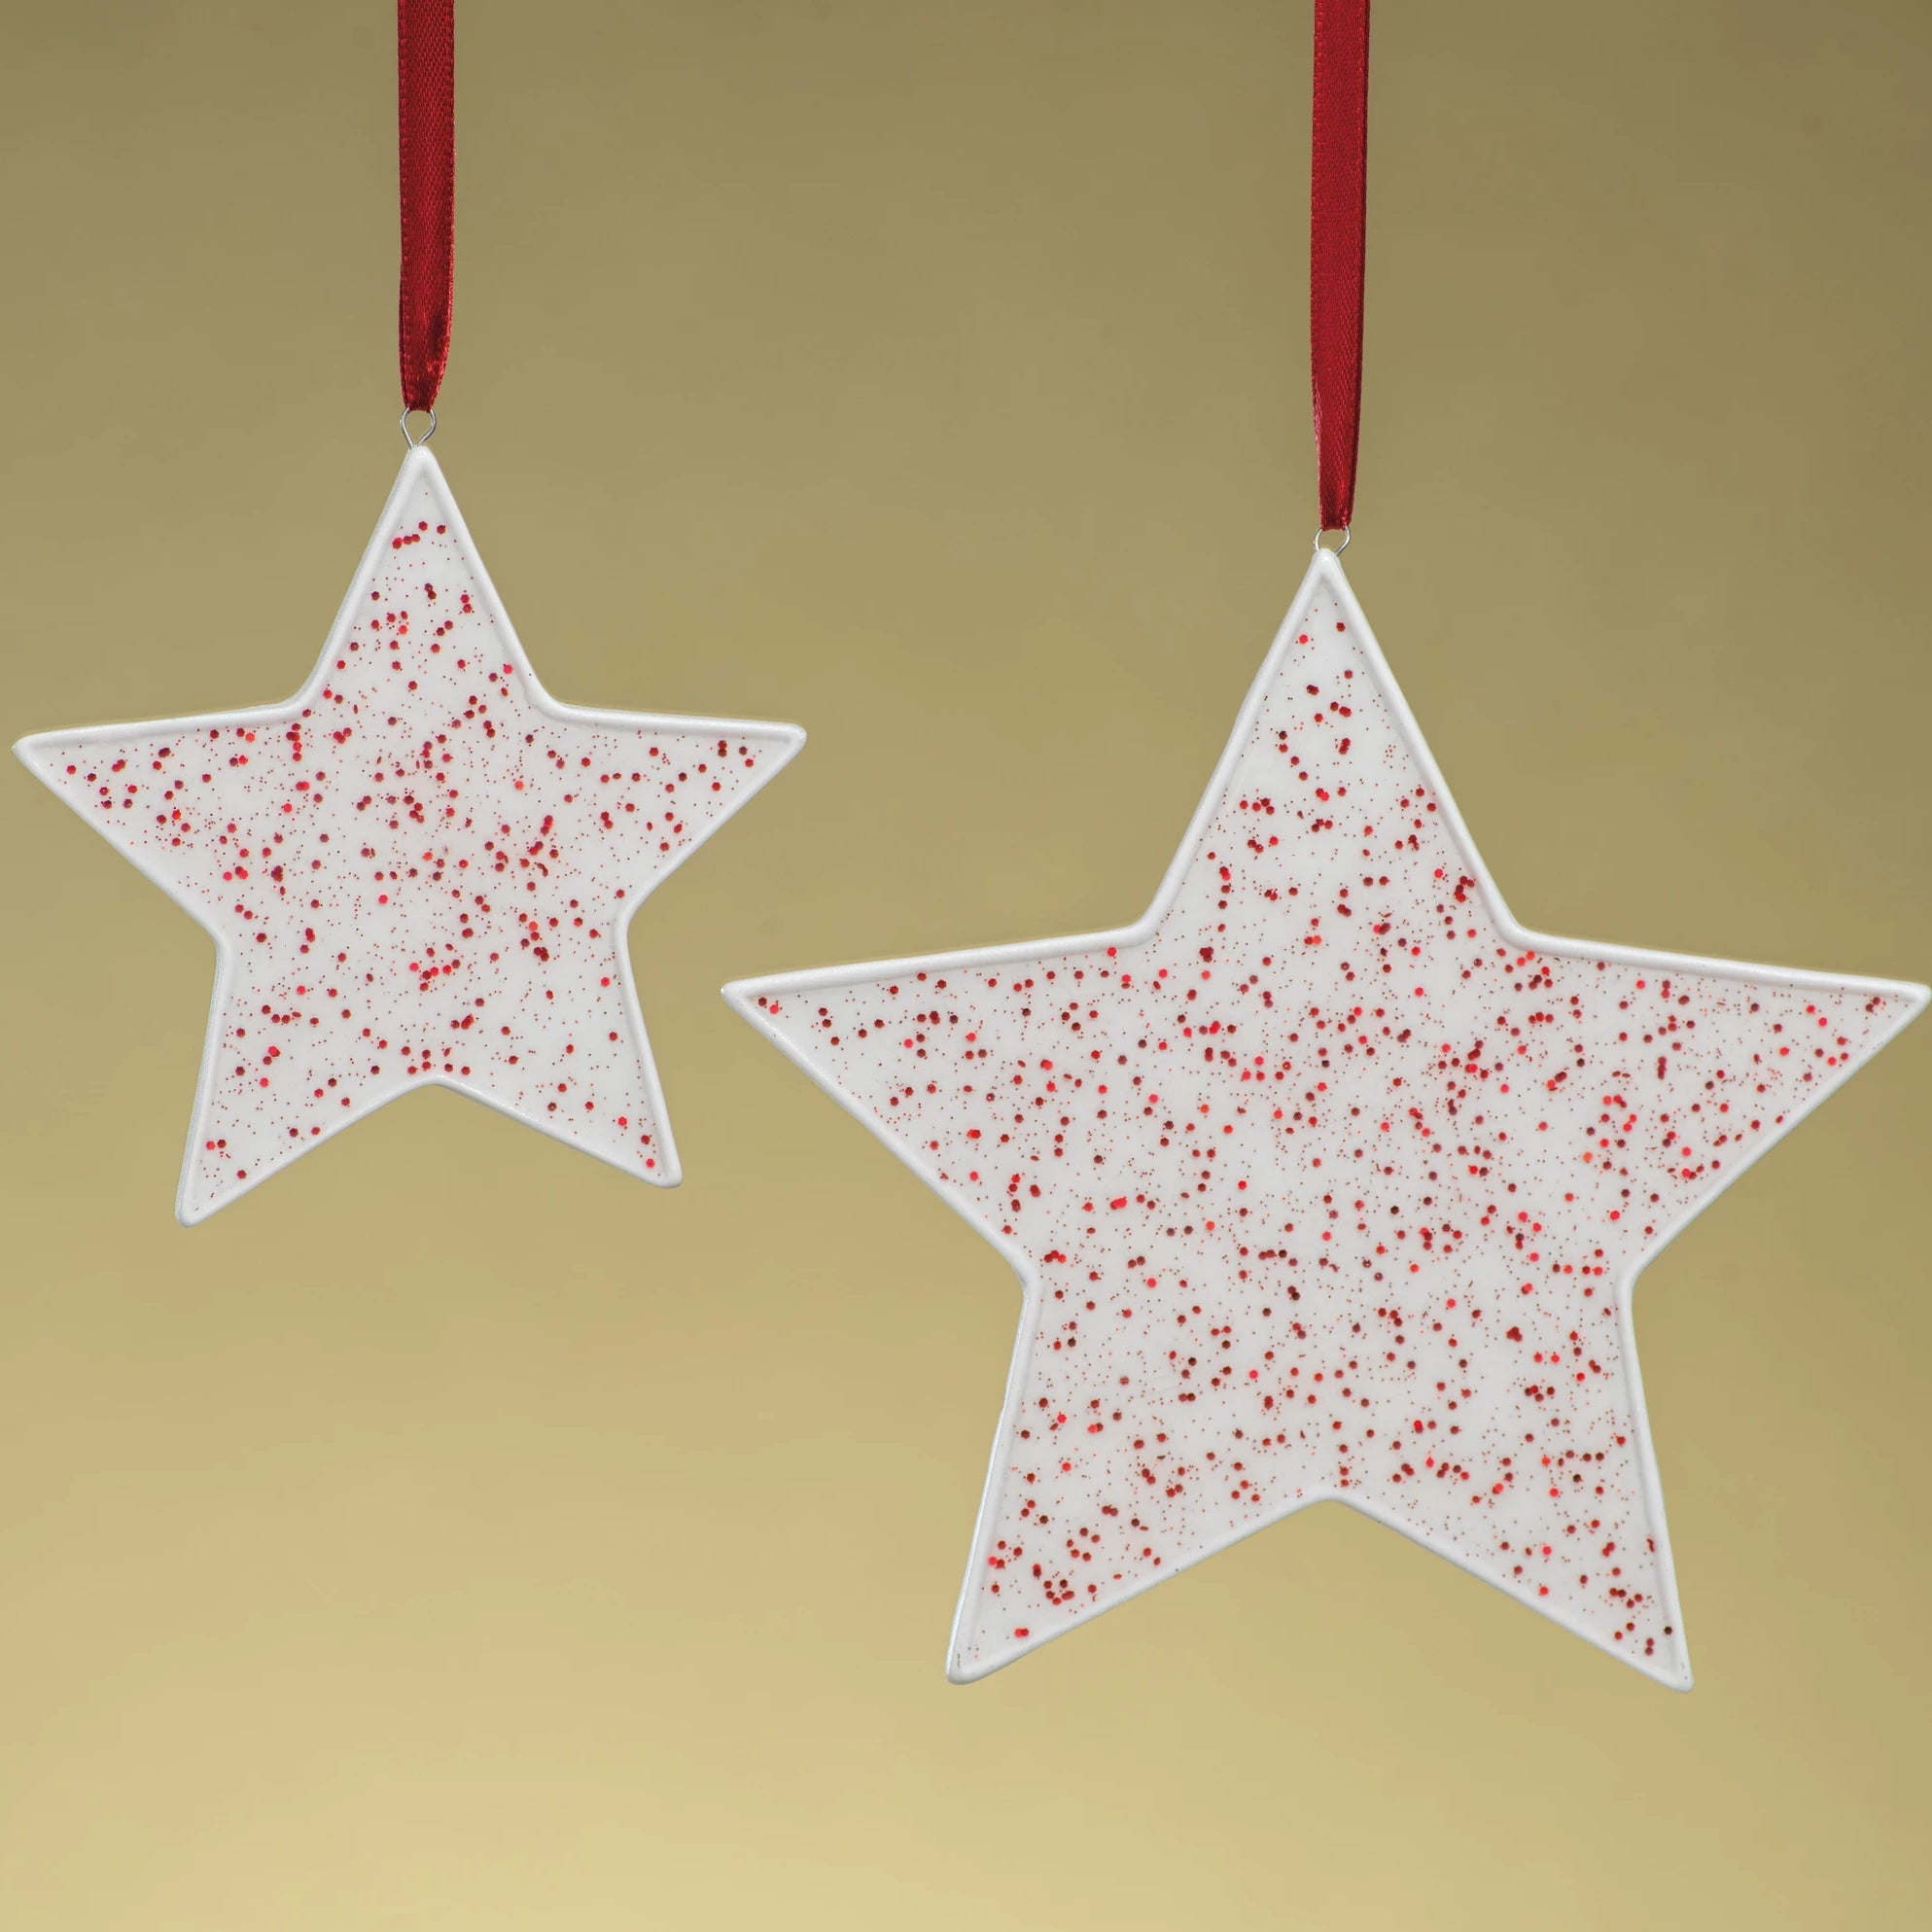 Speckled Star Ornament - Red - CARLYLE AVENUE